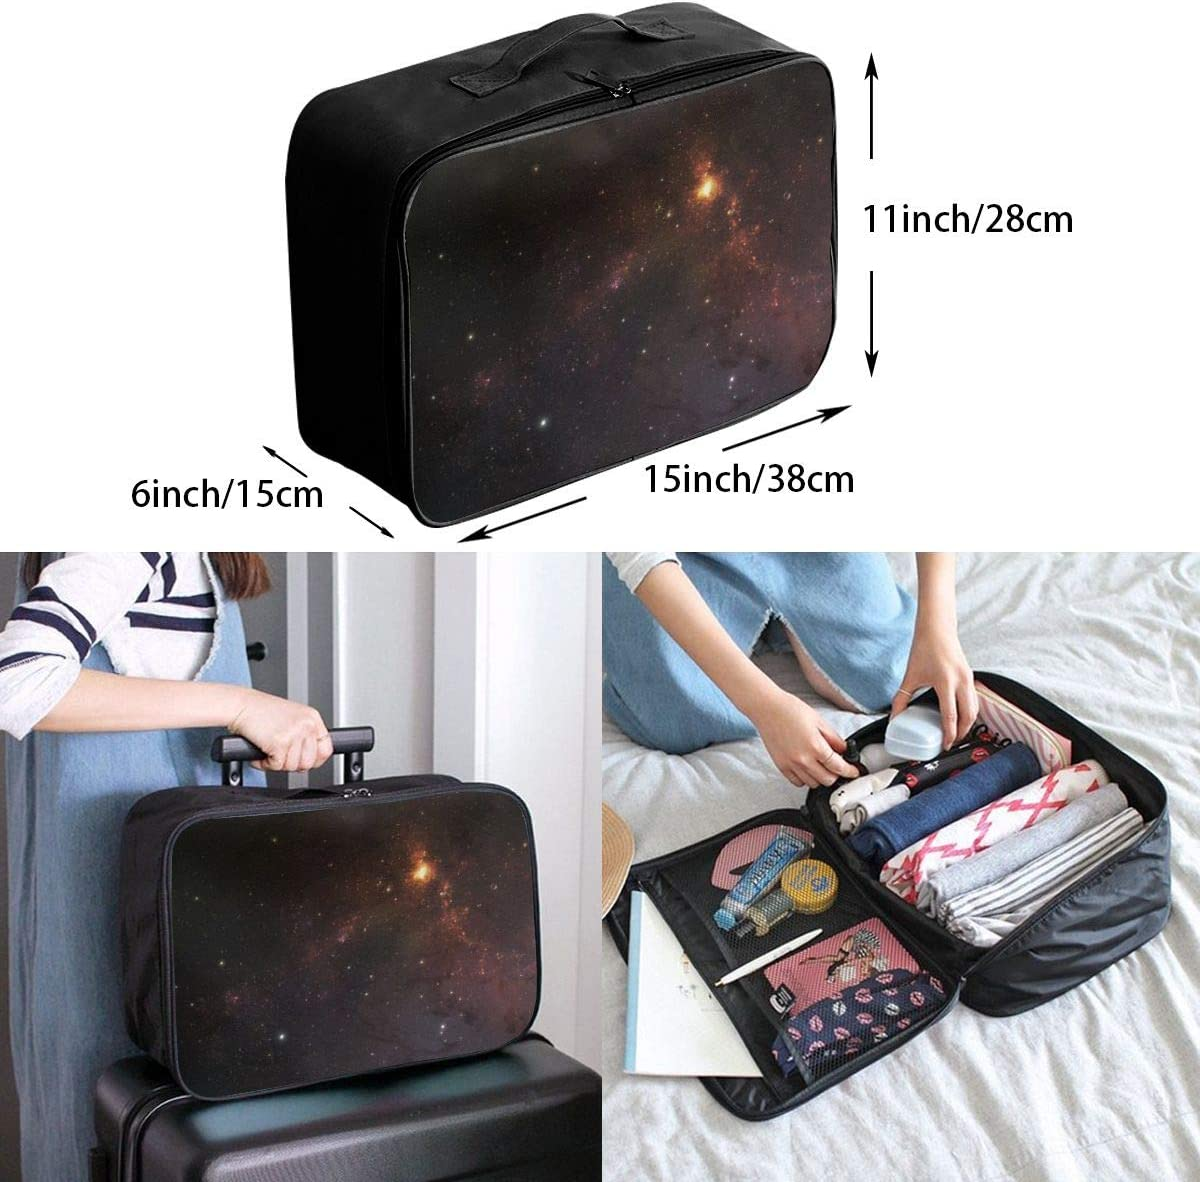 Yunshm Stars Galaxy Planets Wallpaper Background Personalized Trolley Handbag Waterproof Unisex Large Capacity For Business Travel Storage